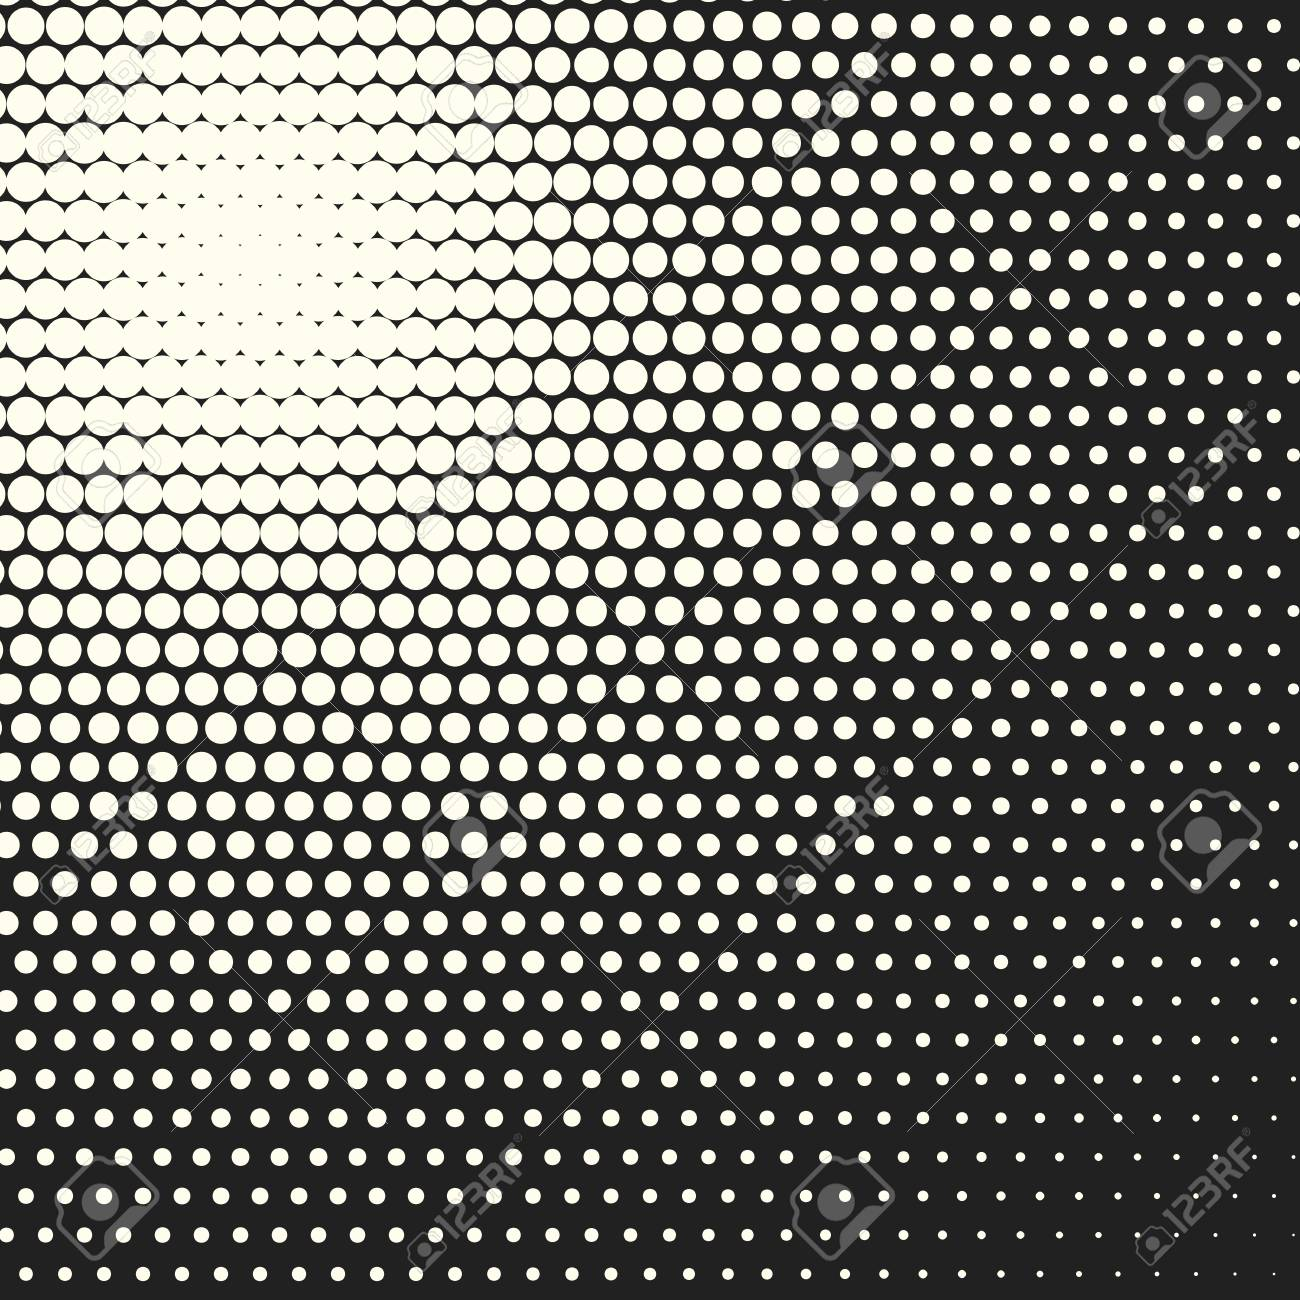 Halftone Dots Vector Black And White Circles Background Geometric Vintage Monochrome Fade Wallpaper